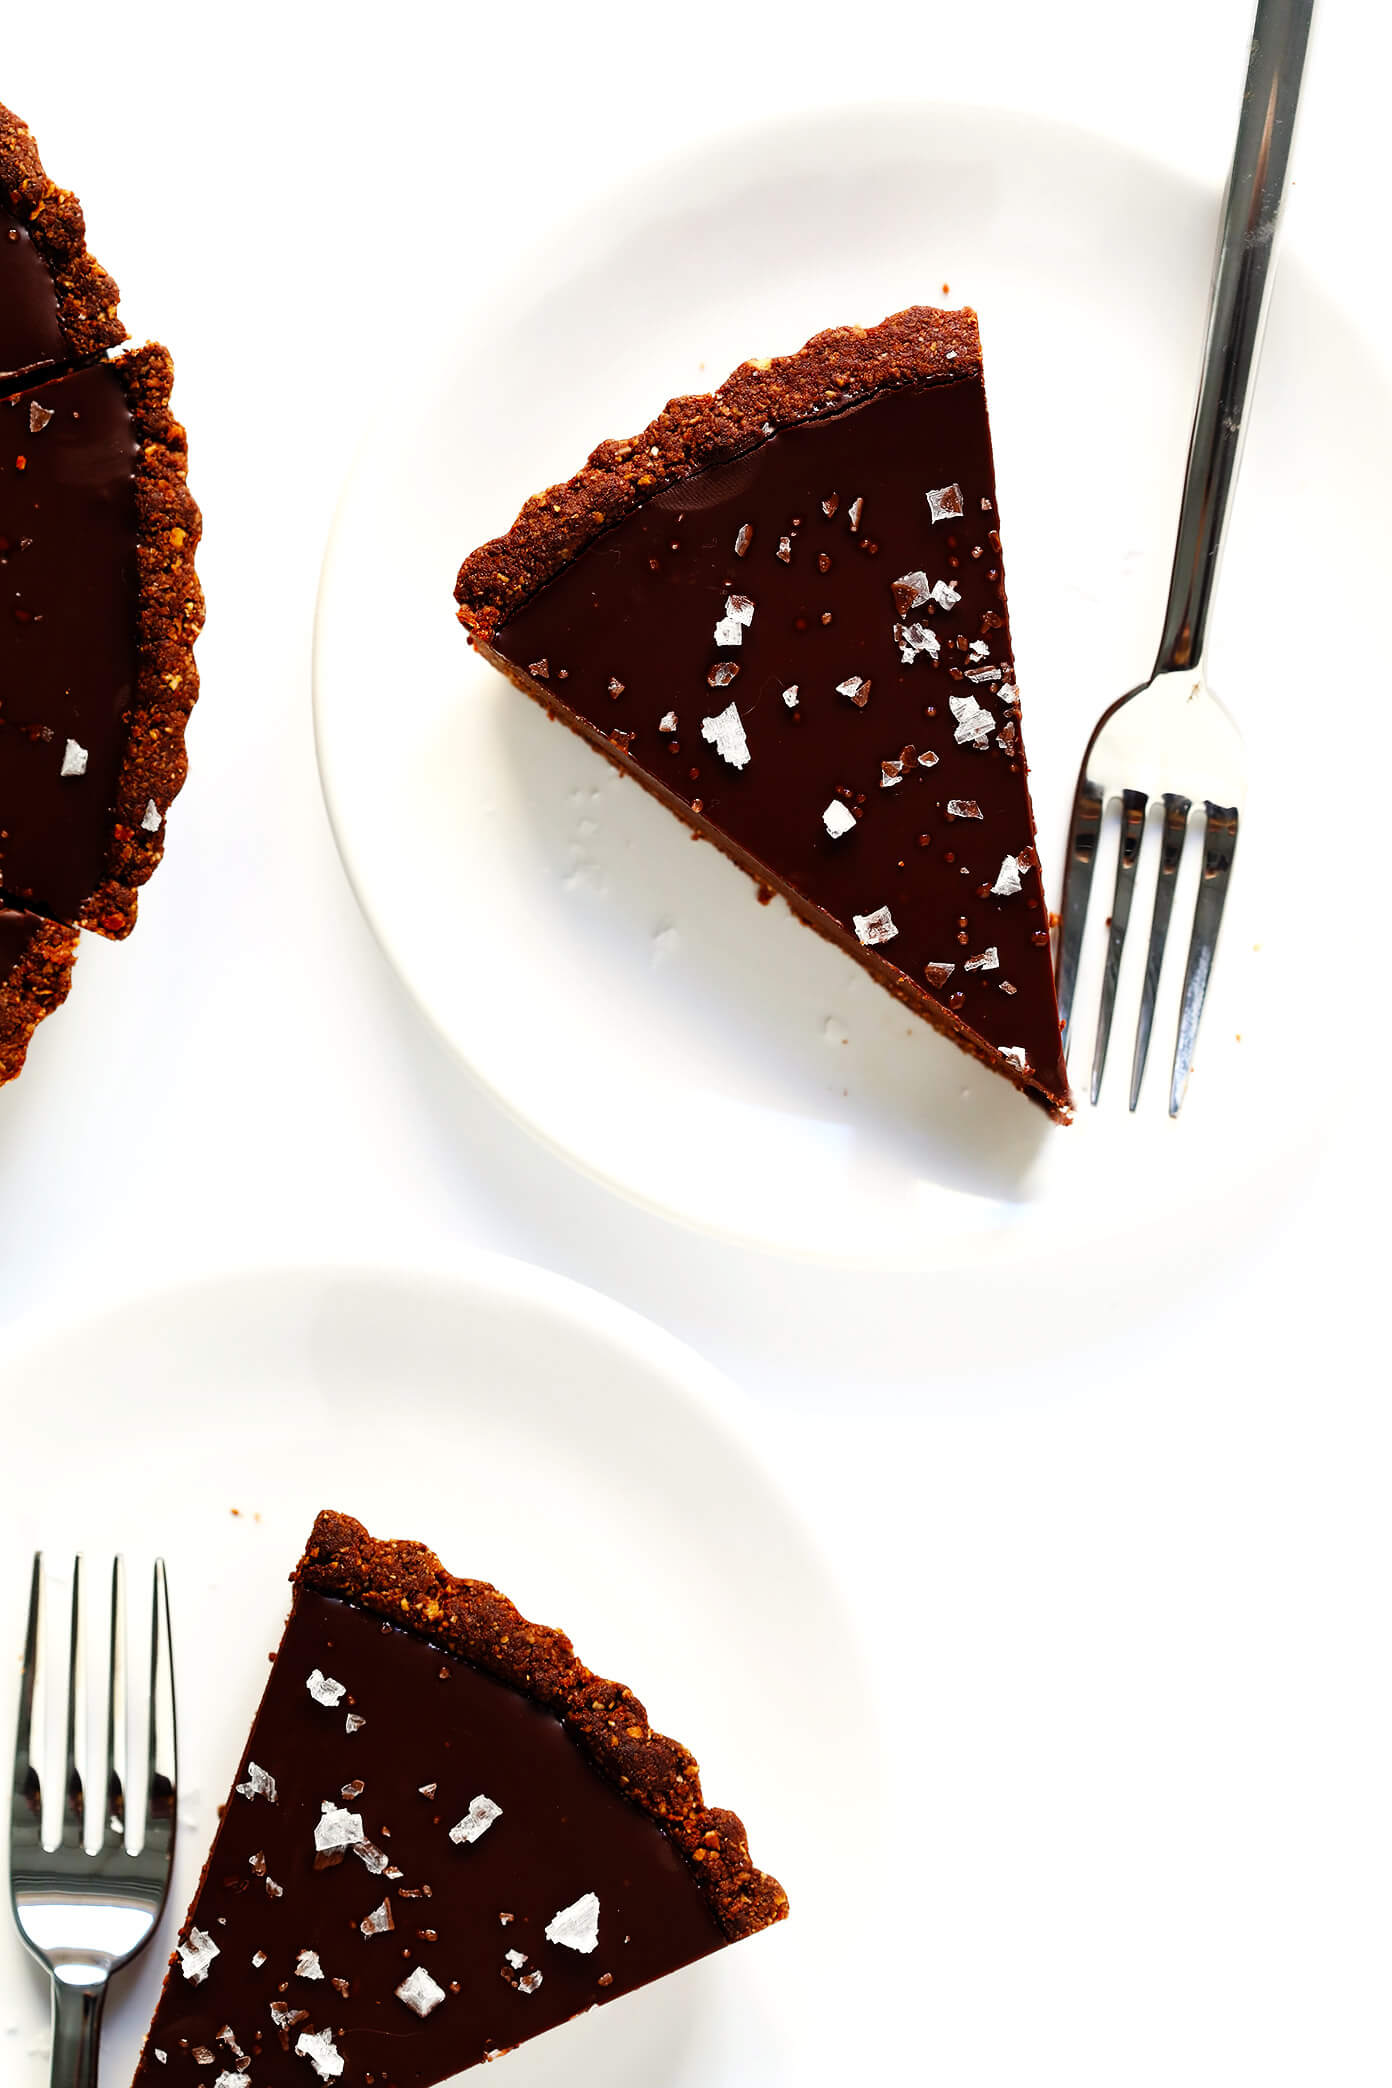 Salted Dark Chocolate Tart Slices